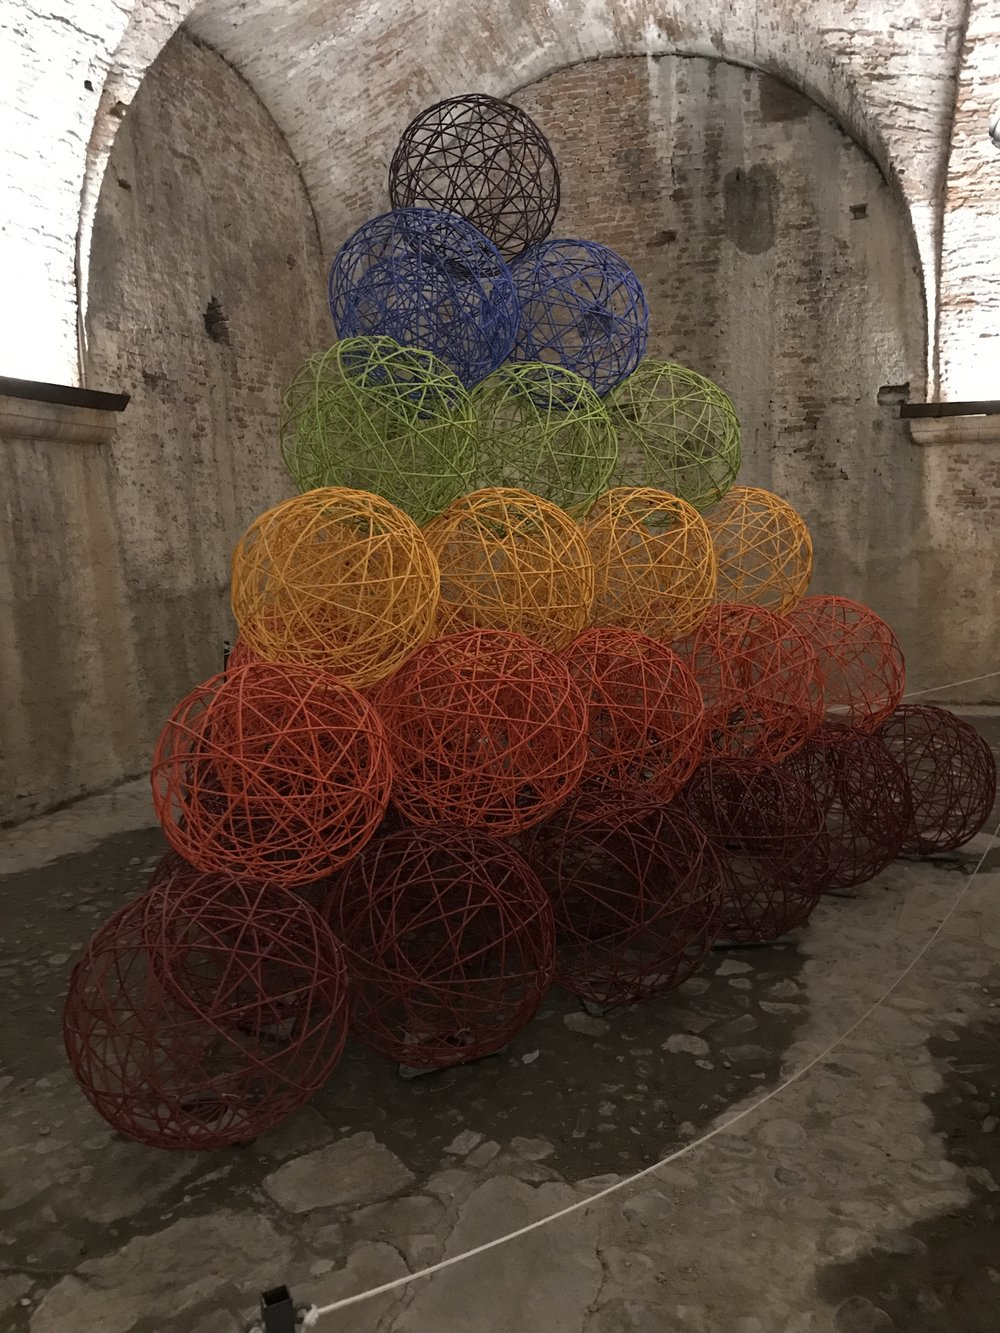 Yes, these colorful spheres are made of paper. According to one guide, they represent the cannon balls that were once stored here.